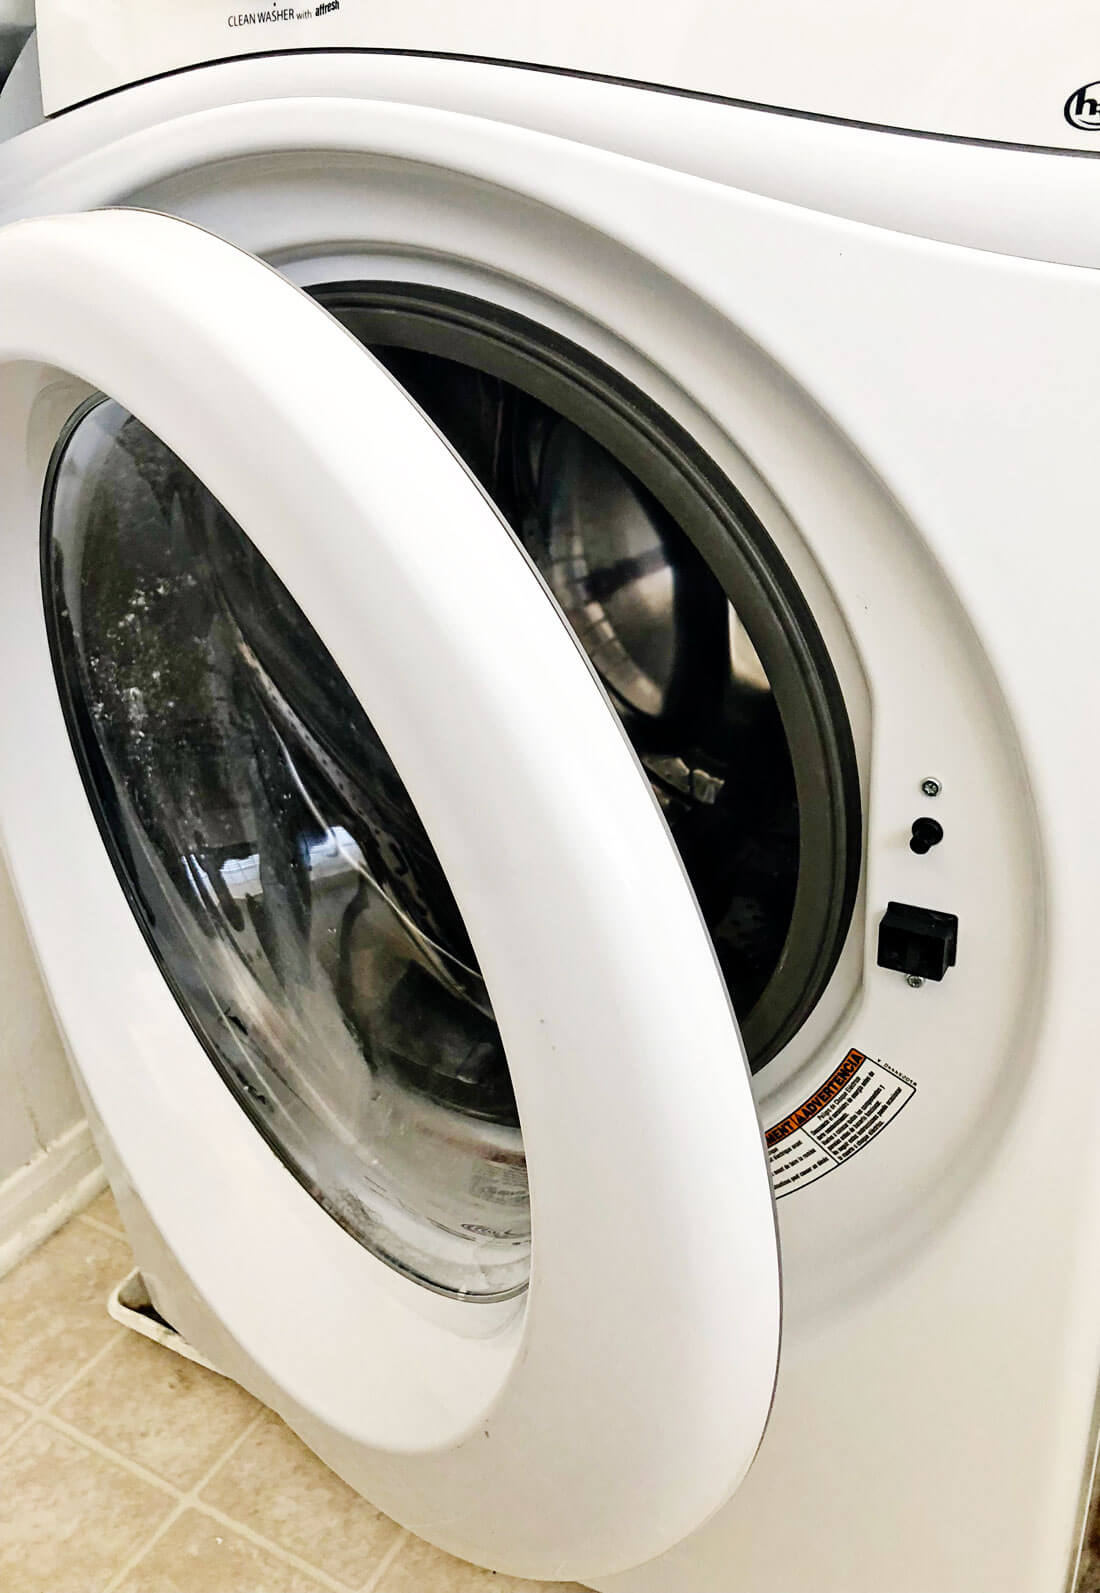 Washing Machine Tips - leave the door slightly ajar to make sure it gets air circulating.